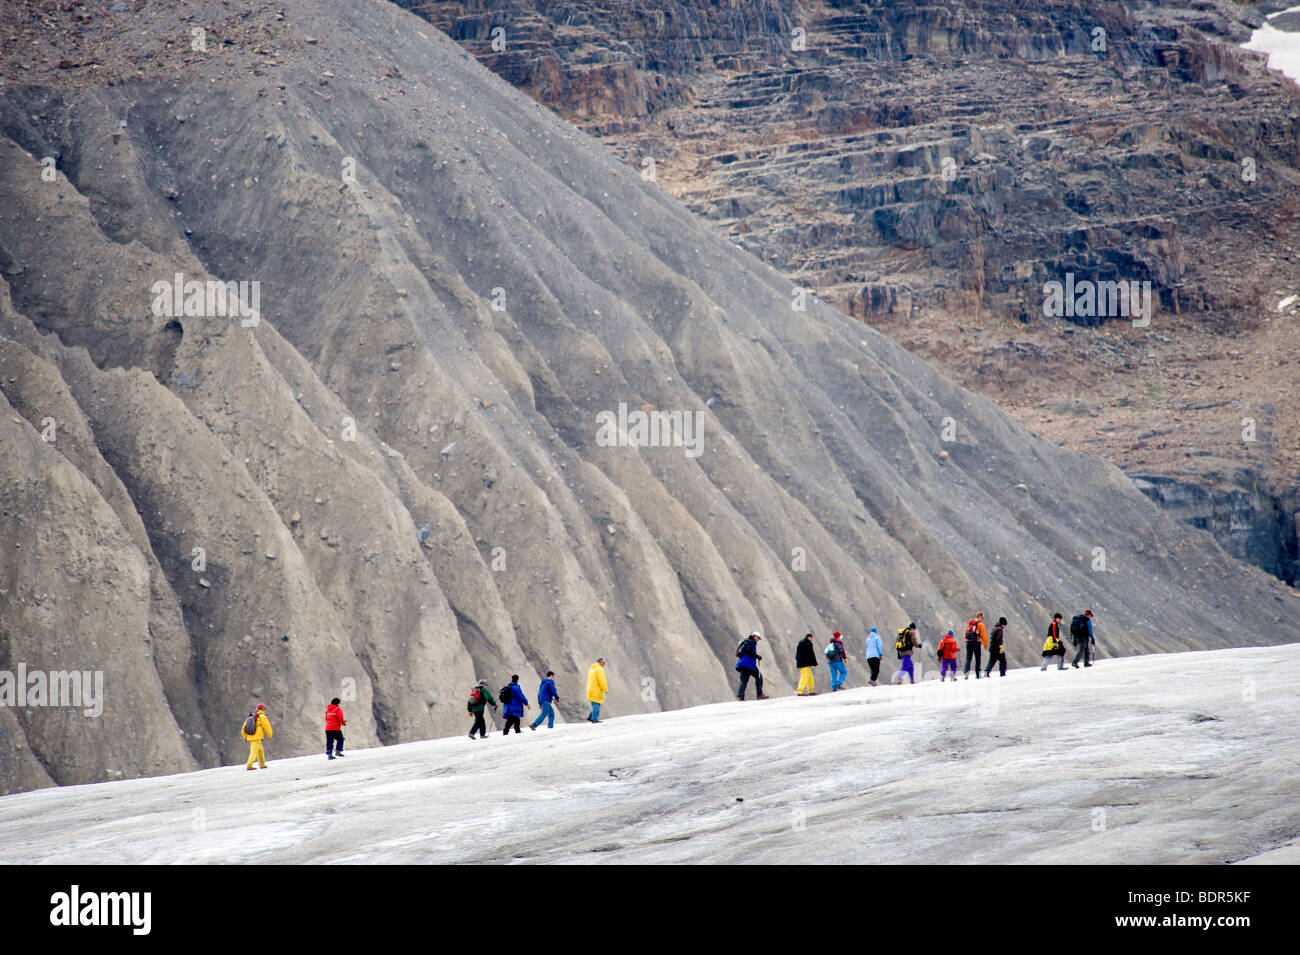 Tourist on a guided walk on the Athabasca Glacier, Jasper National Park, Alberta, Canada - Stock Image